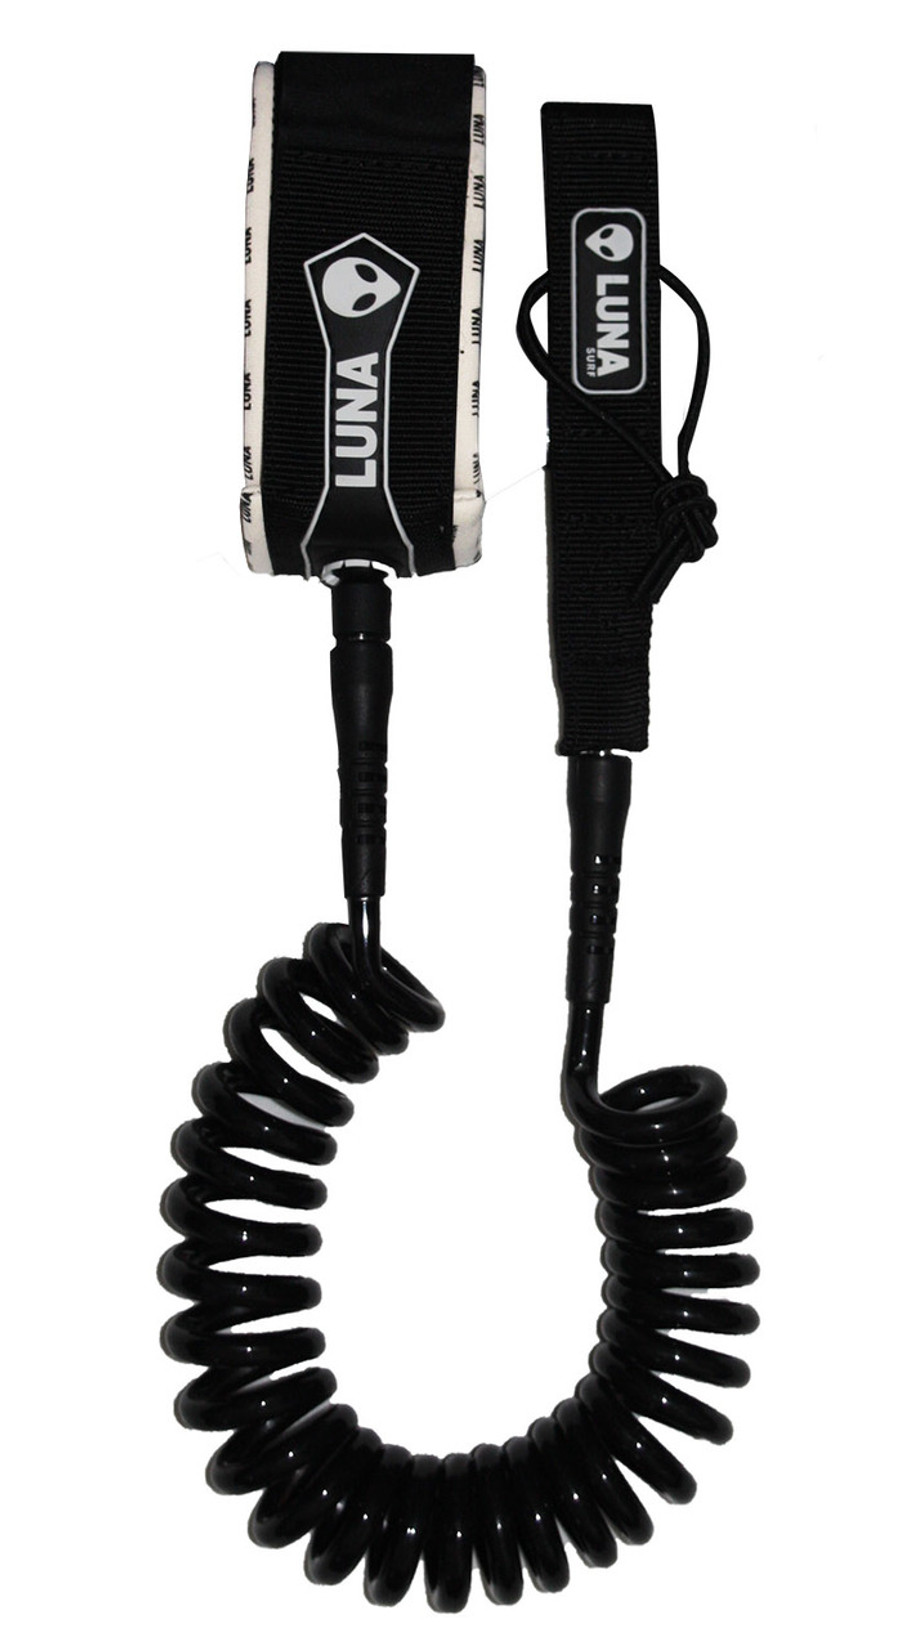 Luna Coiled SUP leash 10ft Black